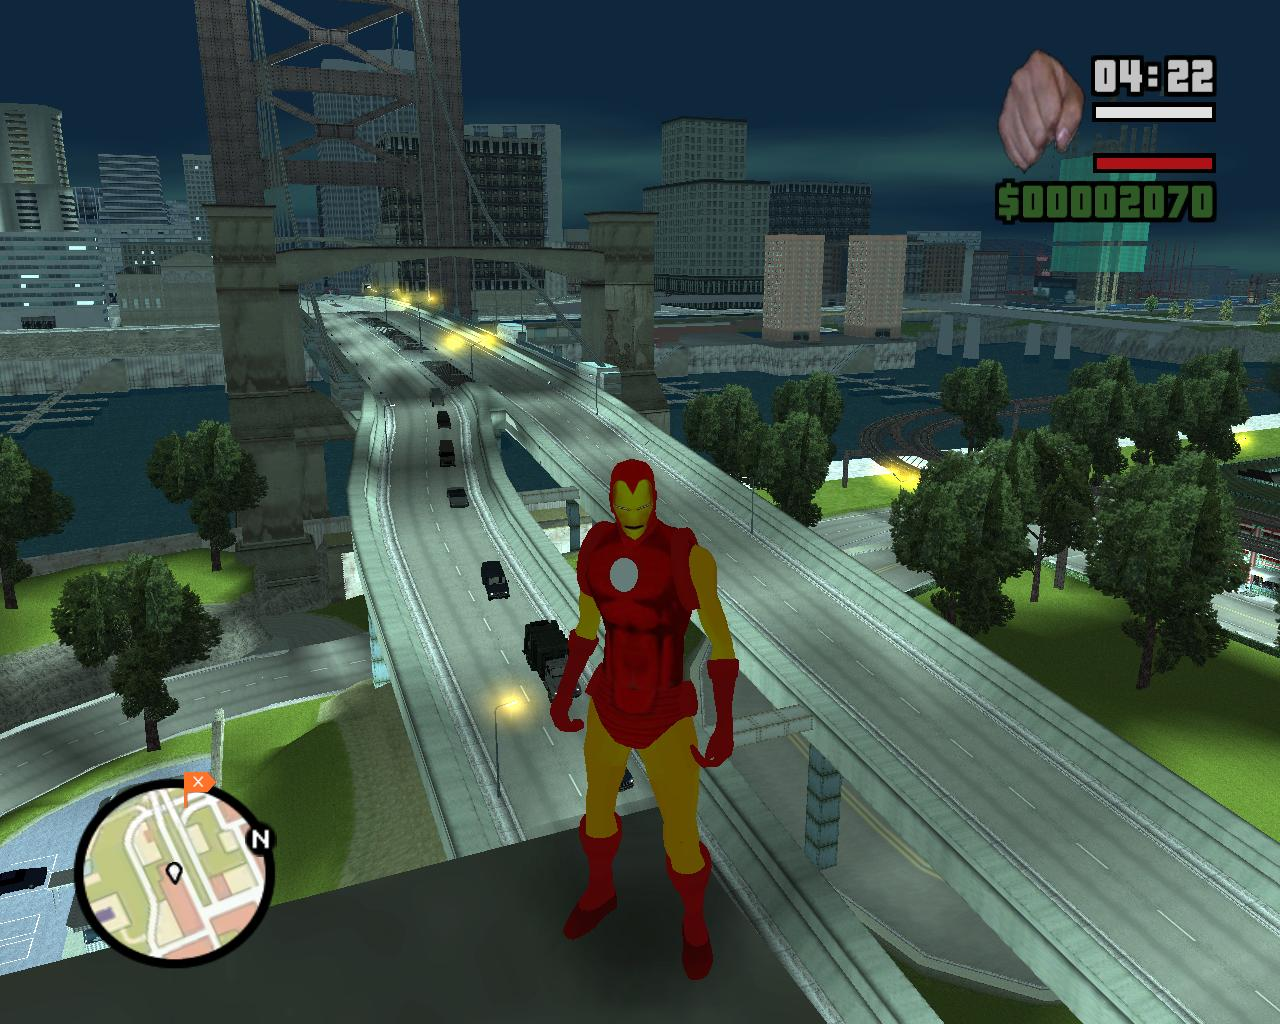 gta san andreas iron man 3 mods and skins download